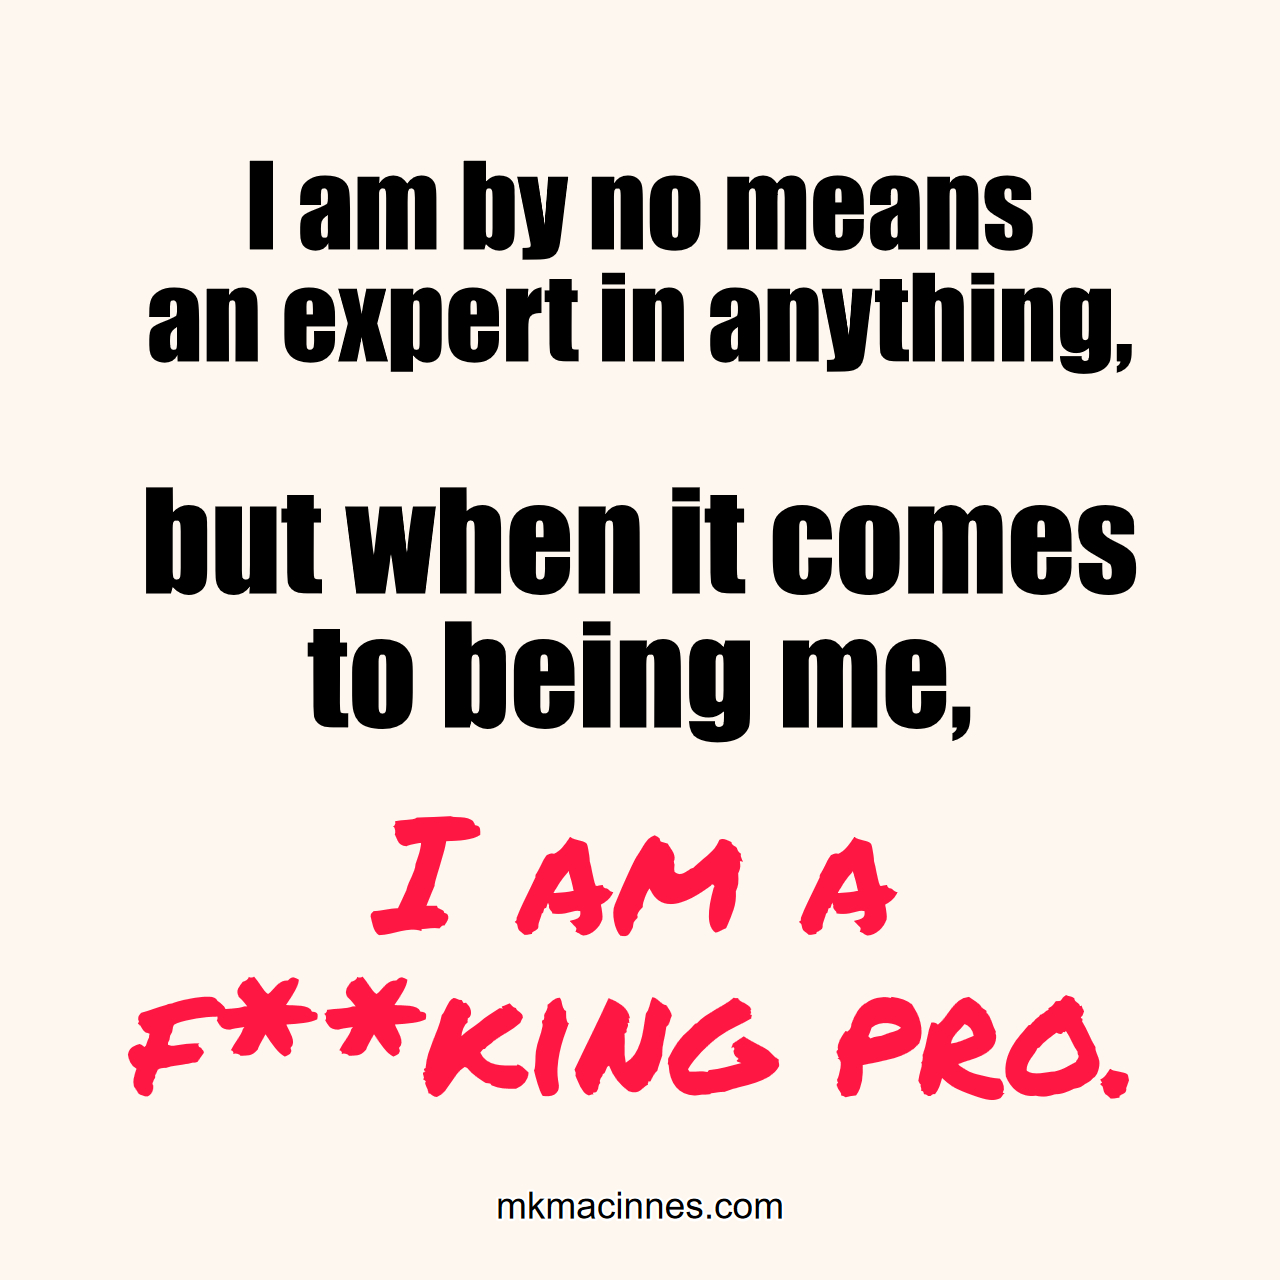 I am by no means an expert in anything but when it comes to being me I am a fucking pro